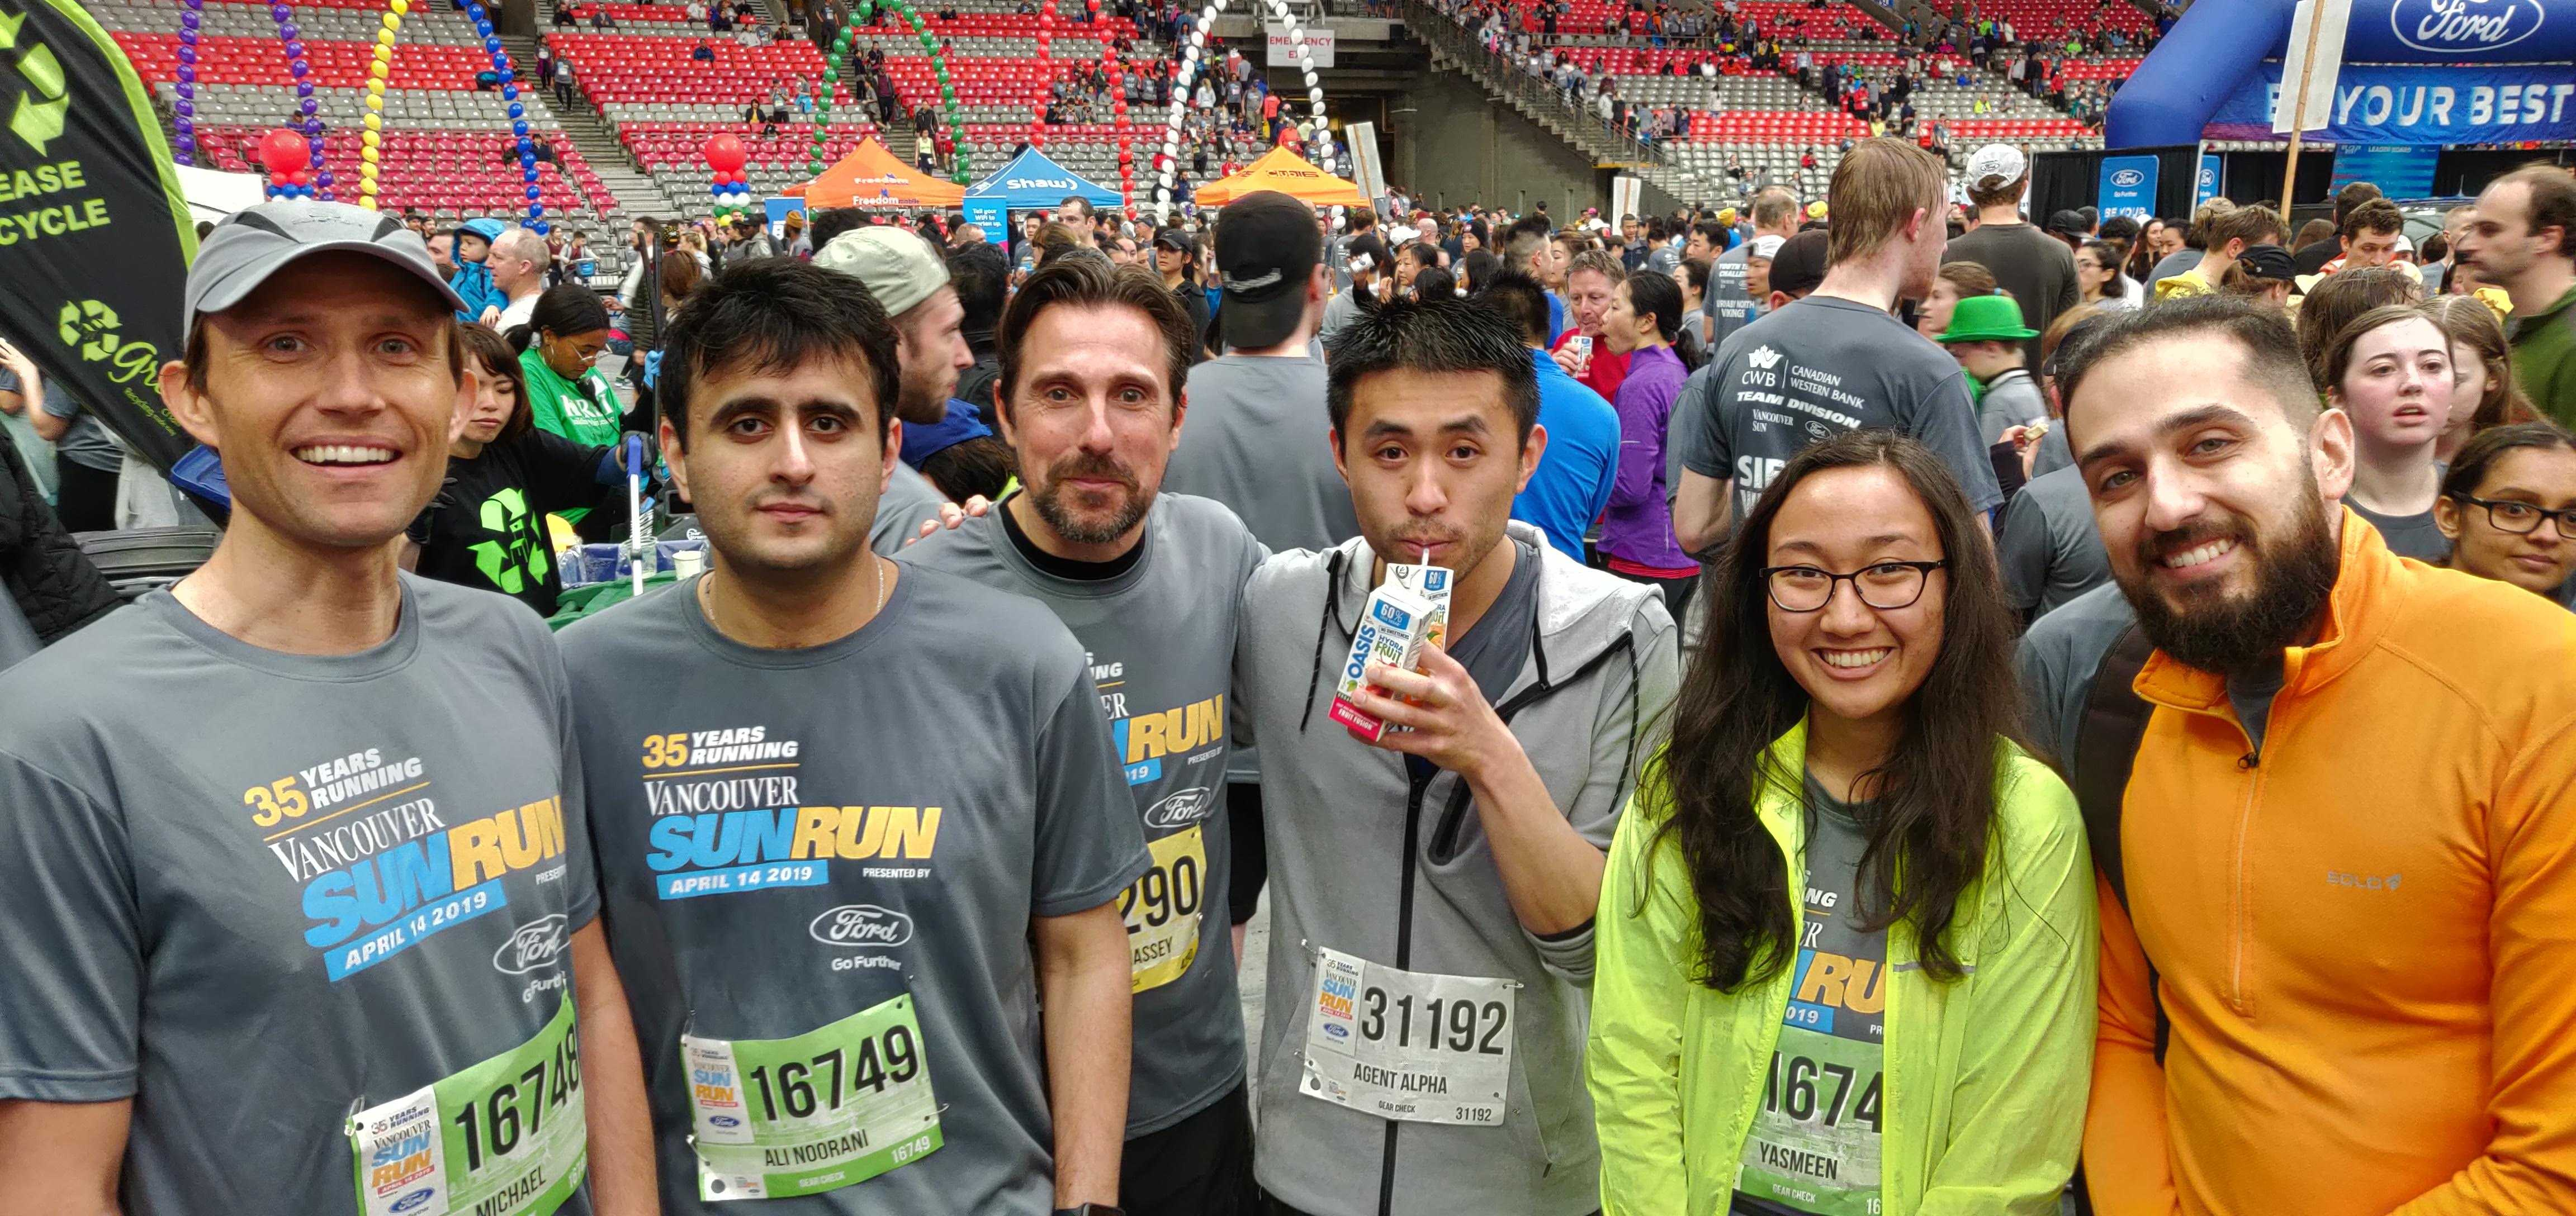 Vancouver Sun Run Appnovation